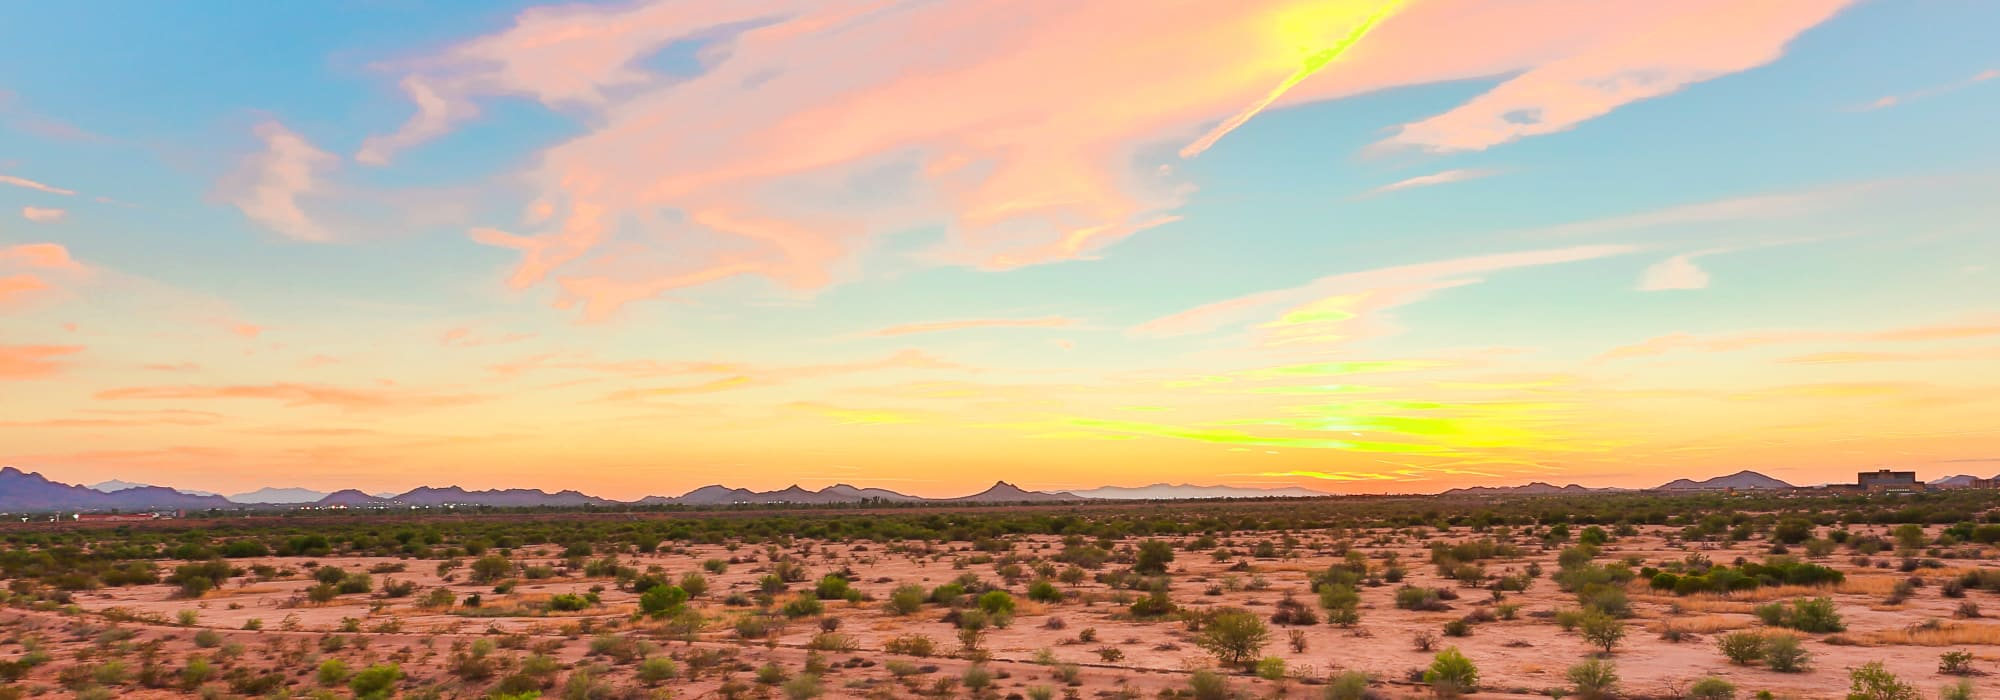 Breathtaking sunset view from Slate Scottsdale in Phoenix, Arizona